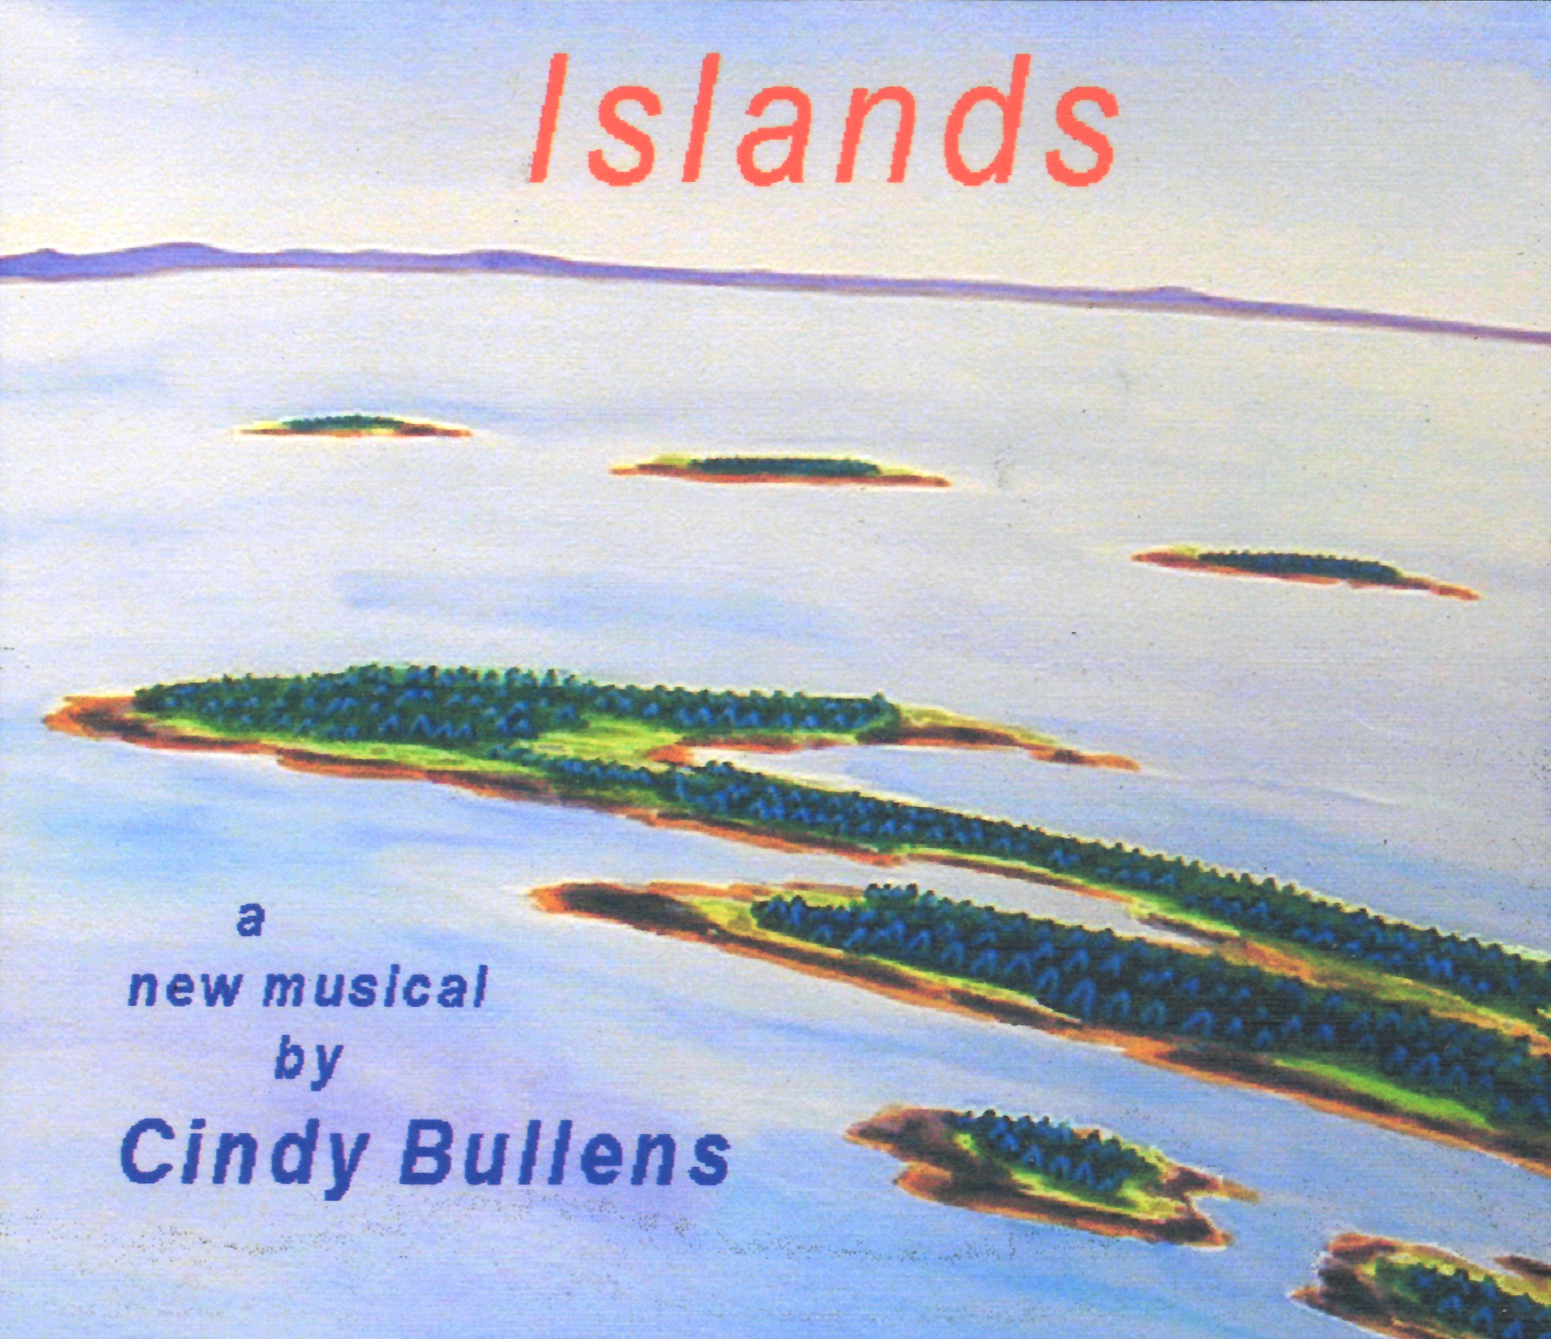 Islands, The Musical